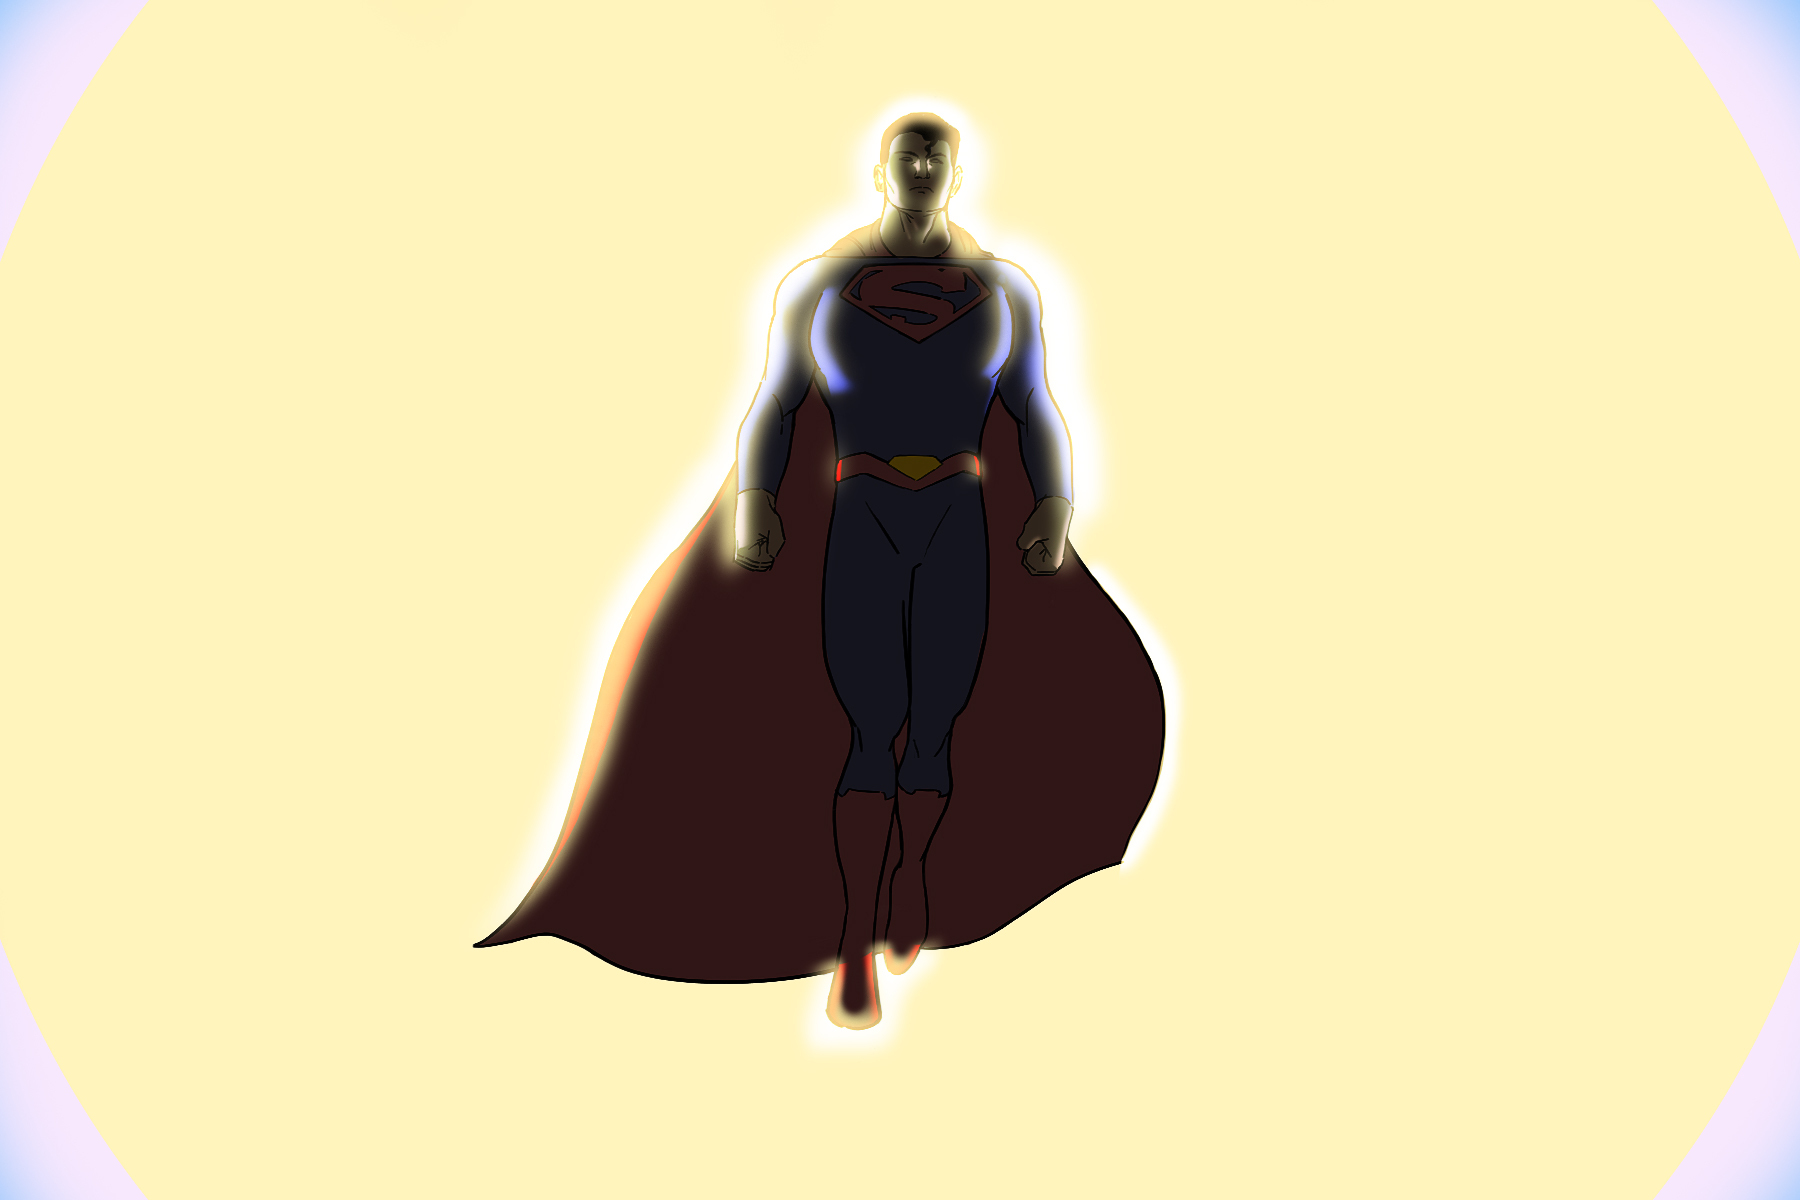 An illustration of Superman for an article about starting new superhero comic books. (Illustration by Mel Quagrainie, Columbia College Chicago)